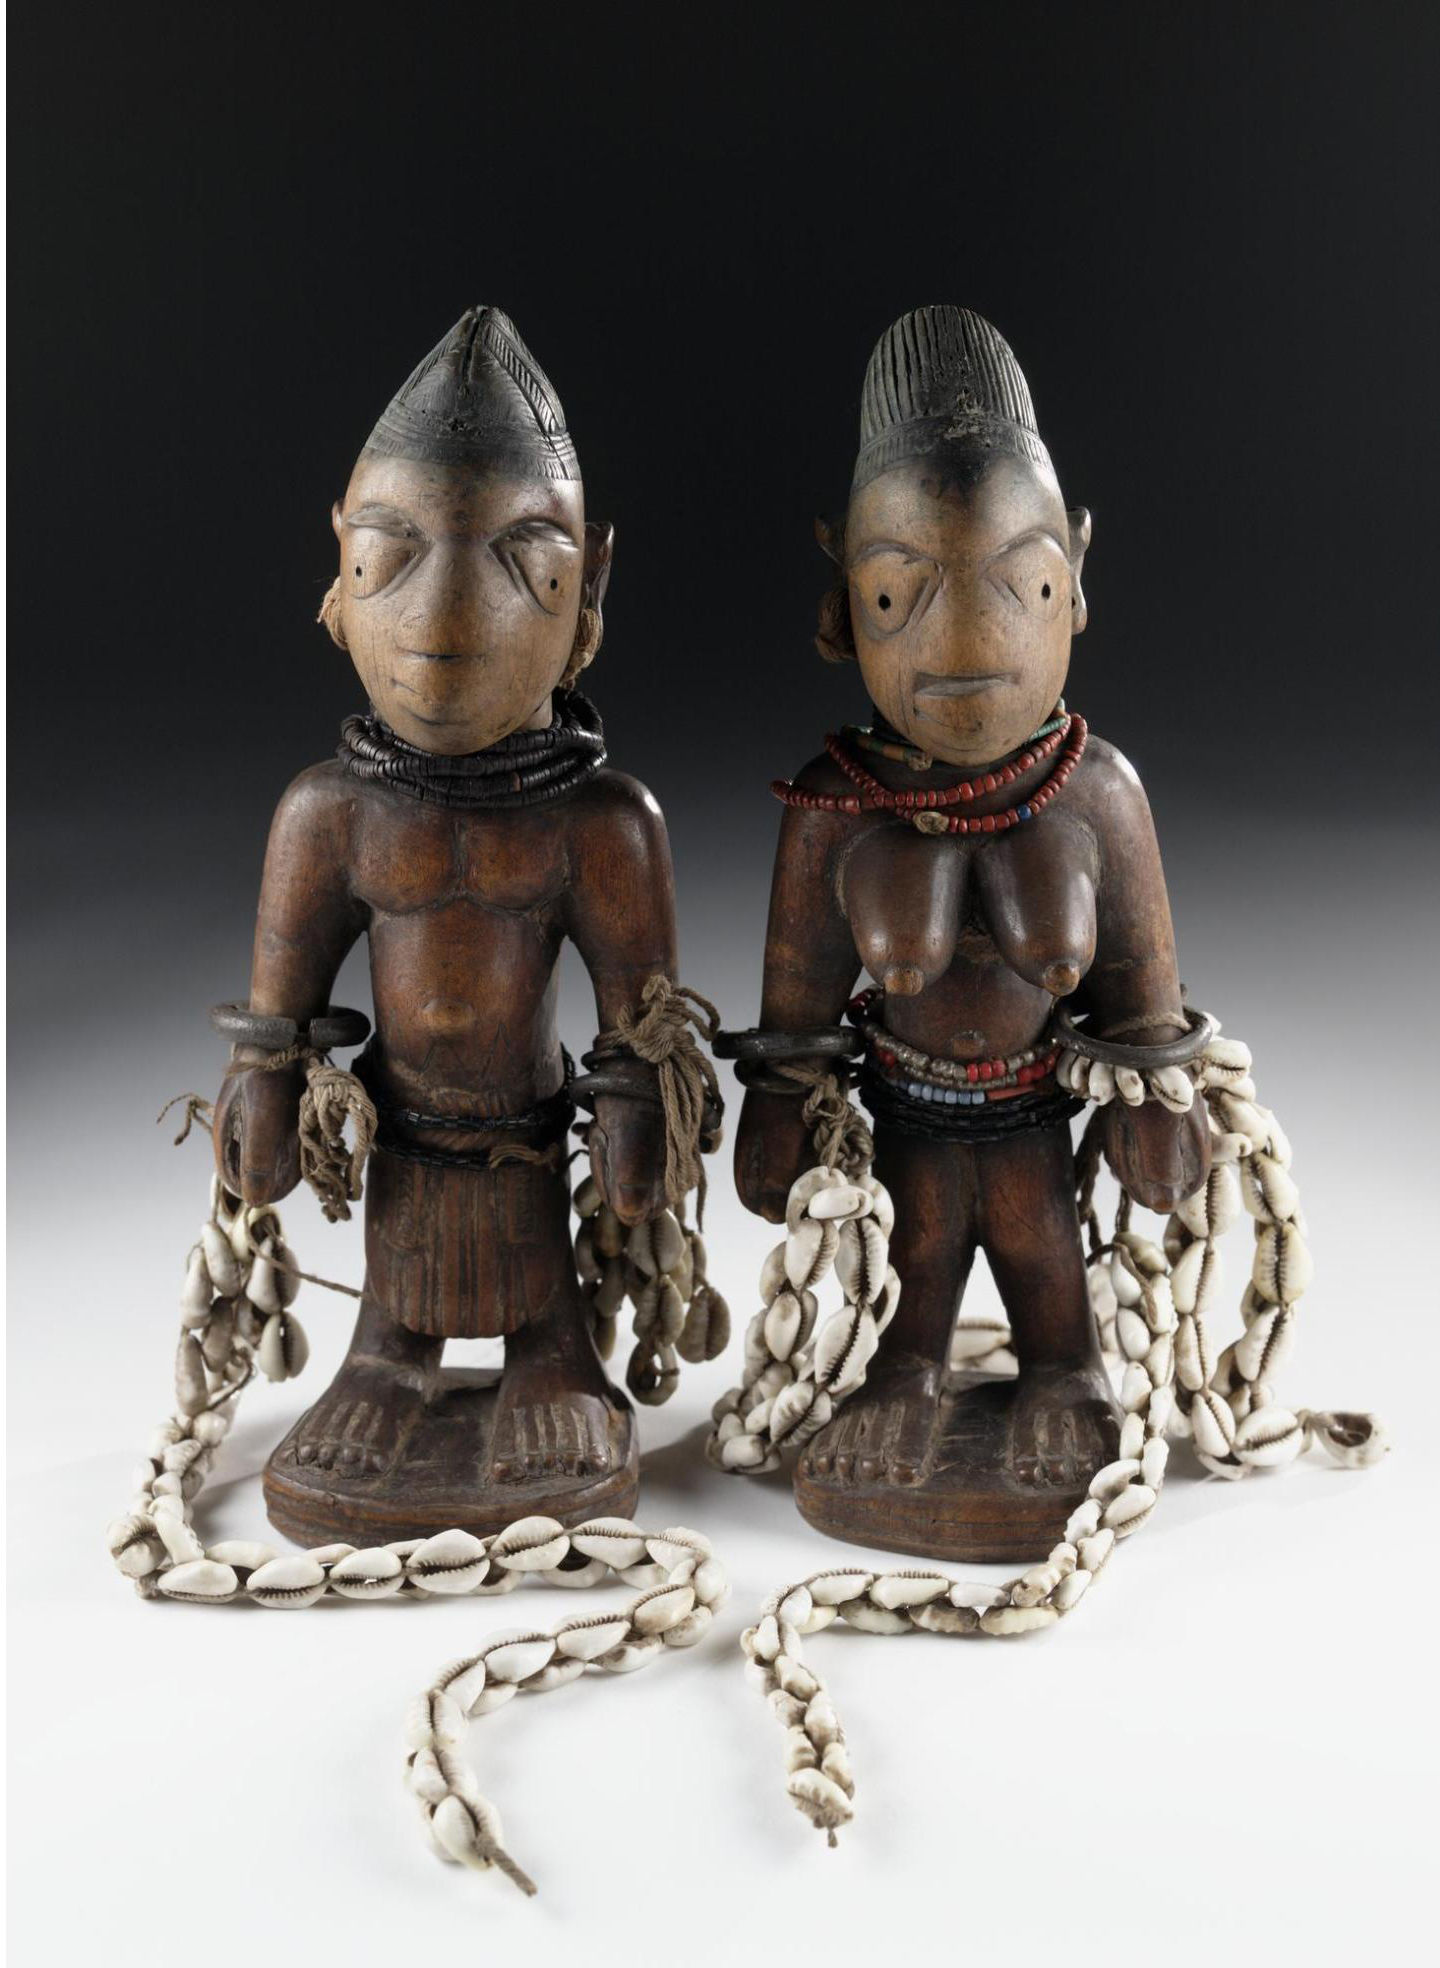 Carved wooden ere ibeji figures, Africa, West Africa, south-western Nigeria, Yoruba, late 19th or early 20th century.